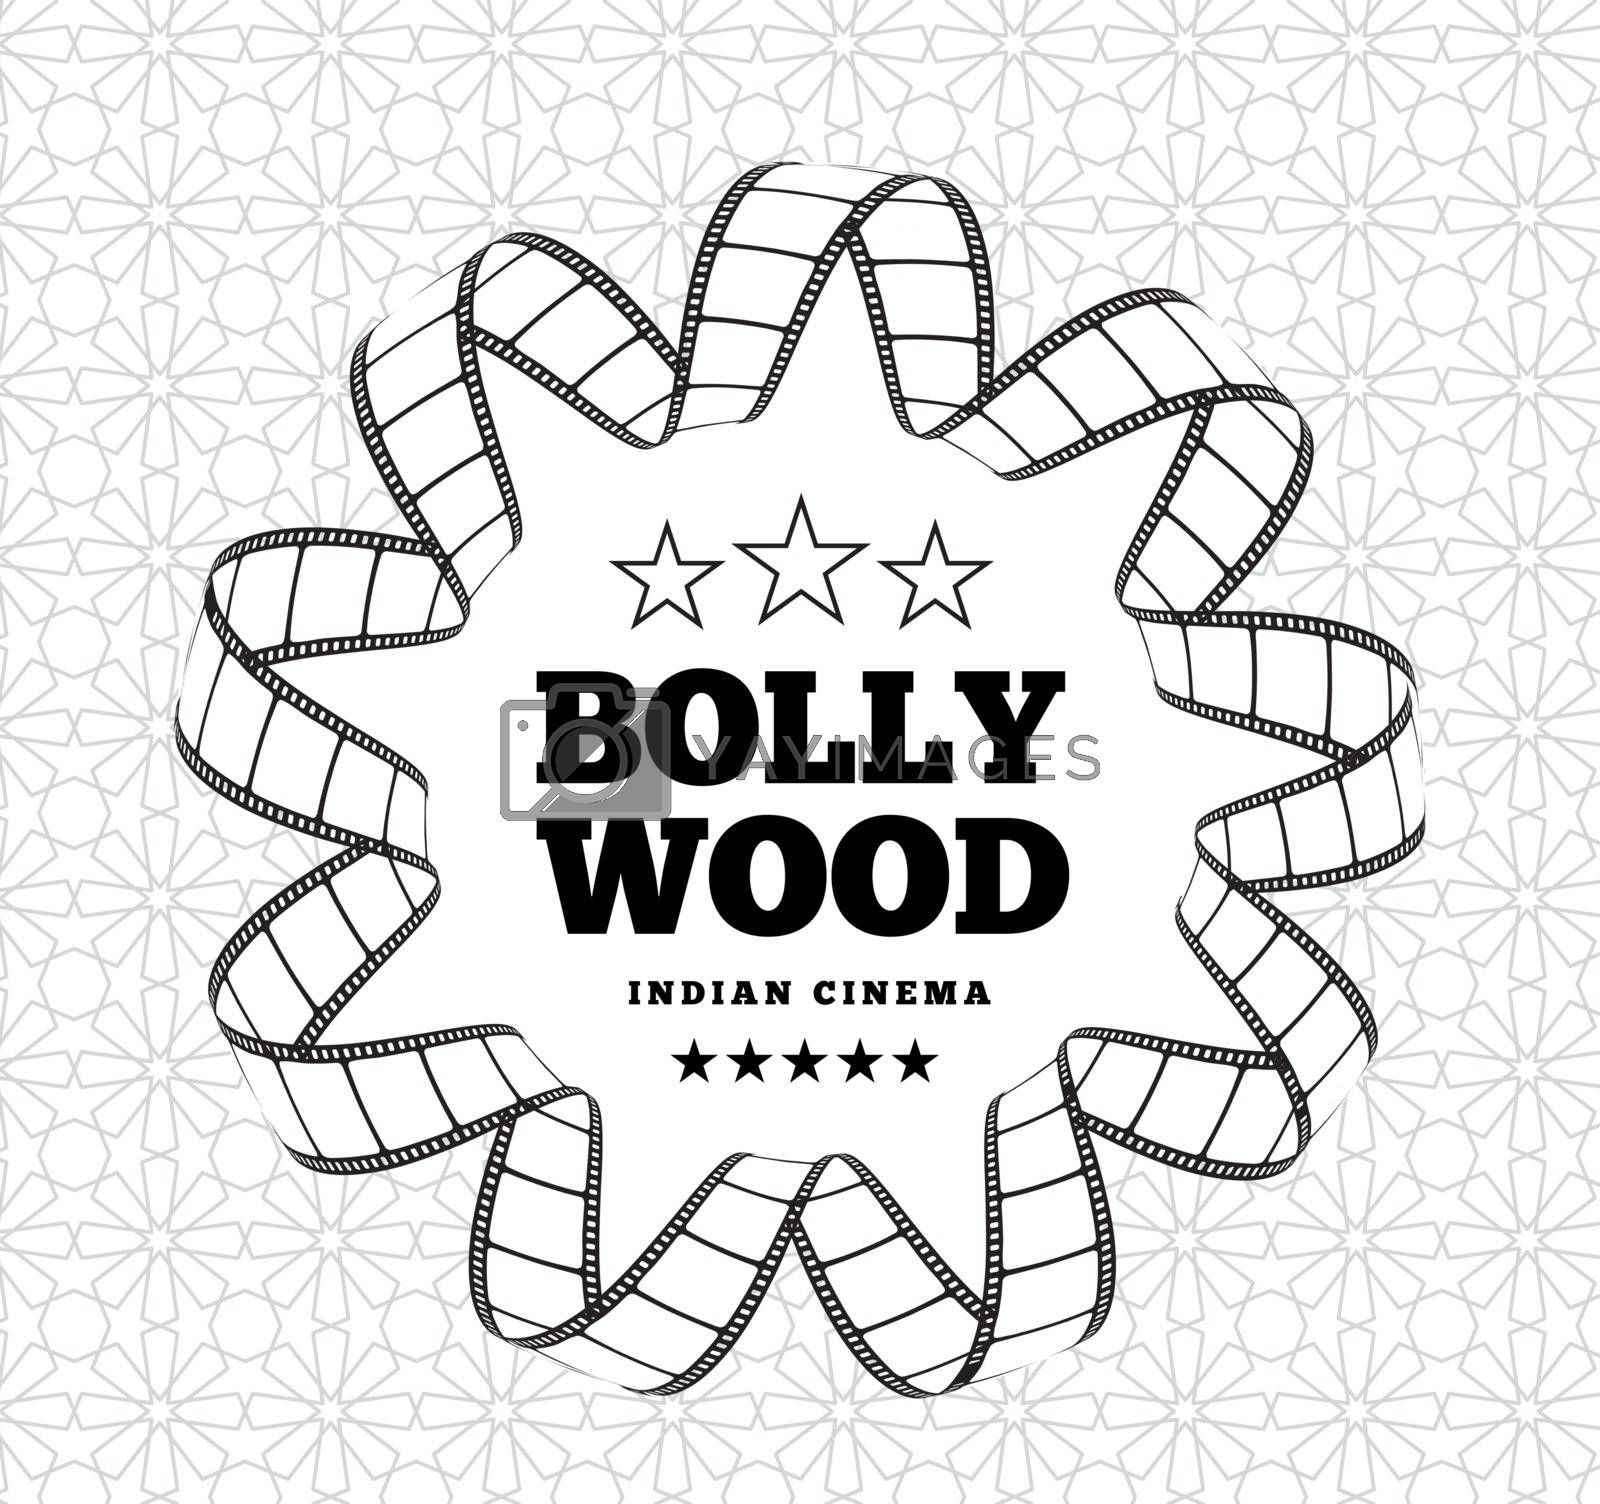 Bollywood is a traditional Indian movie. Vector illustration with film strip on light background